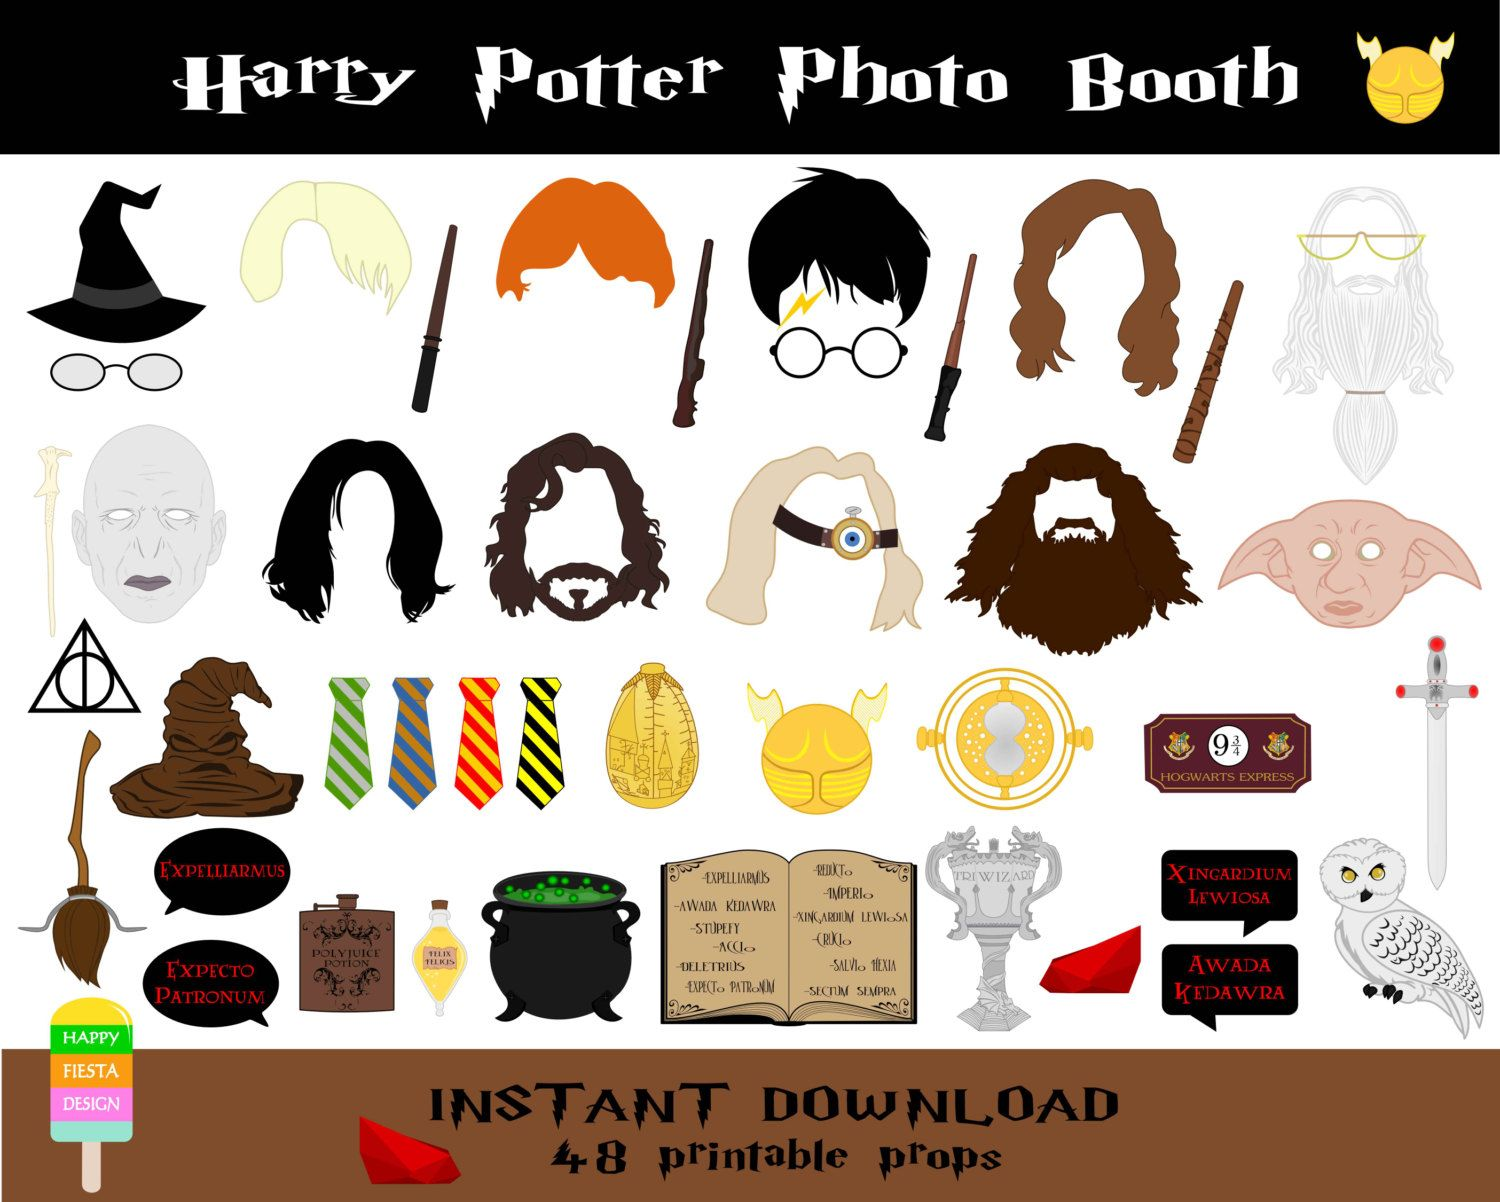 Printable airplane party backdrops party decorations diy template - Harry Potter Photo Booth Props 48 Pieces Printable Harry Potter Props Wizard Party